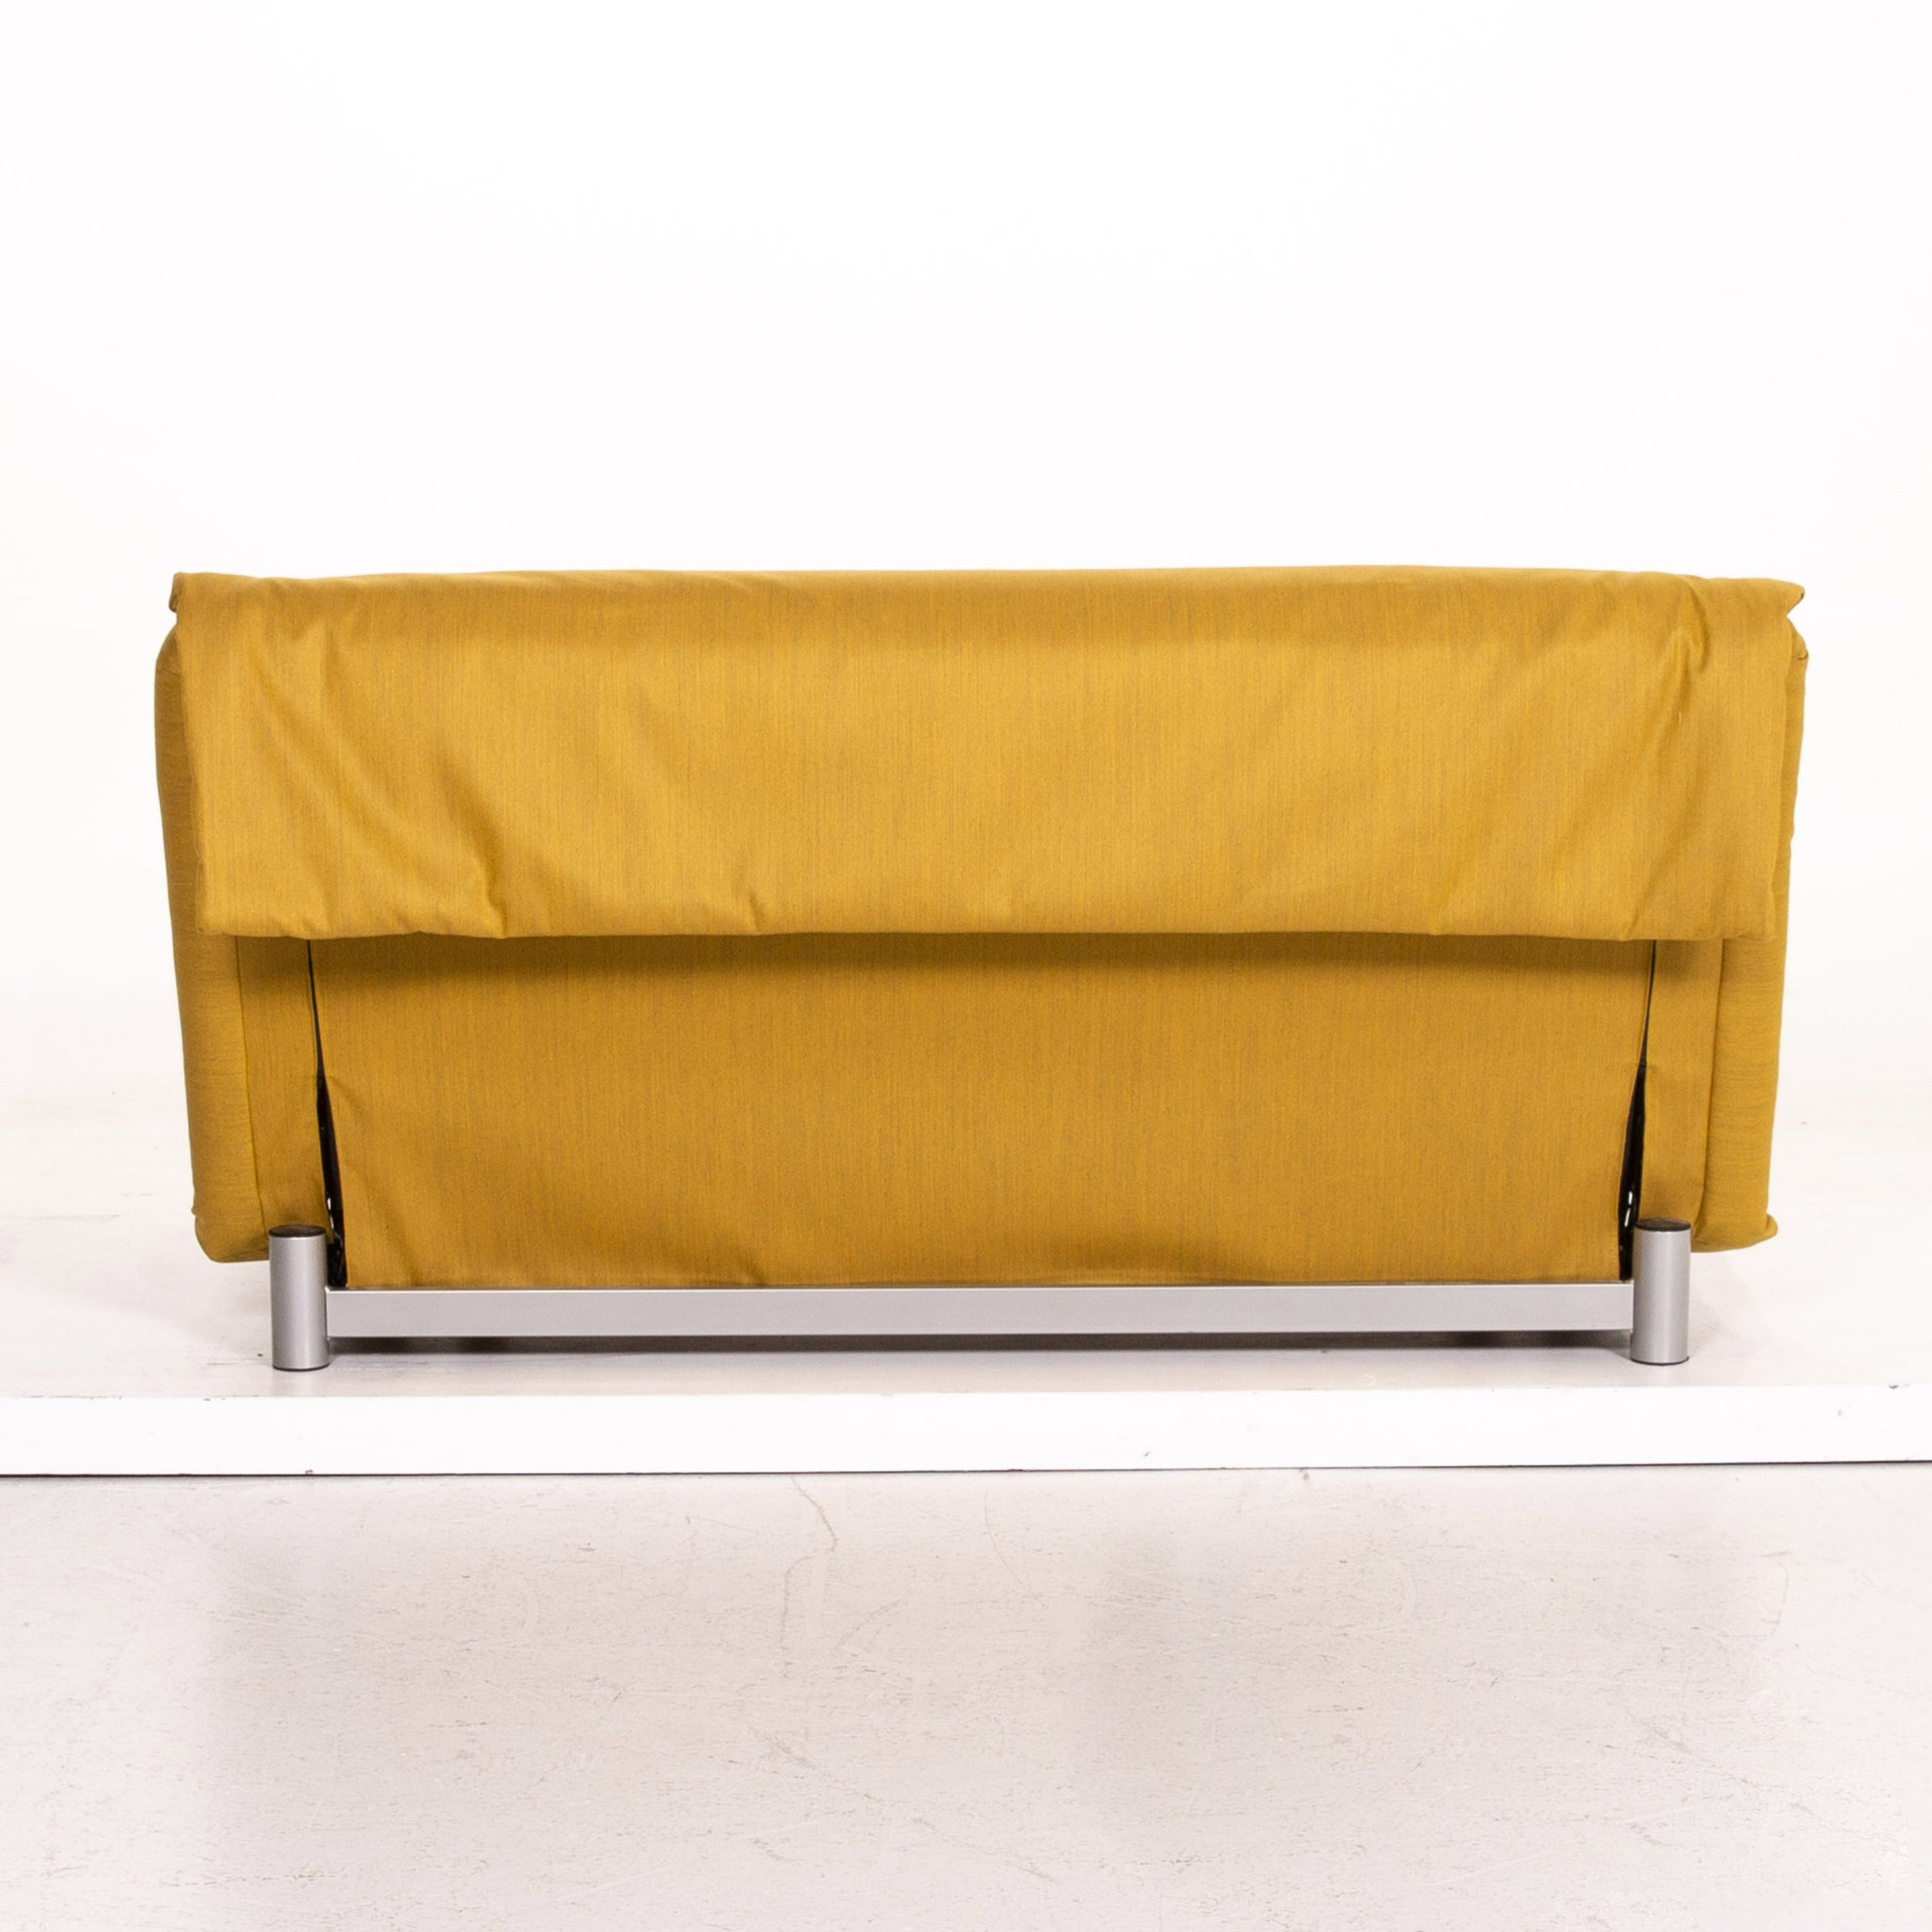 Yellow Schlafsofas Ligne Roset Multy Fabric Sofa Bed Yellow Two-seat Sofa Sleep Function Couch At 1stdibs